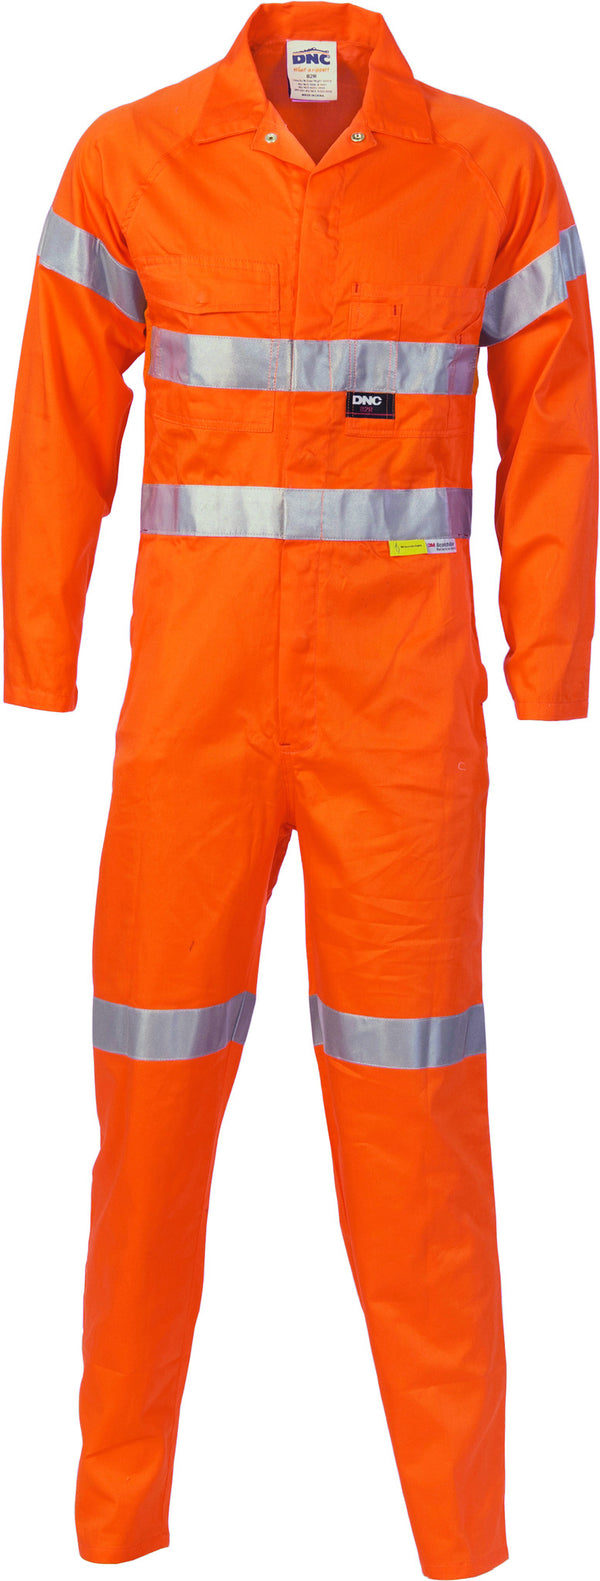 HiVis Cotton Overall With 3M Reflective Tape